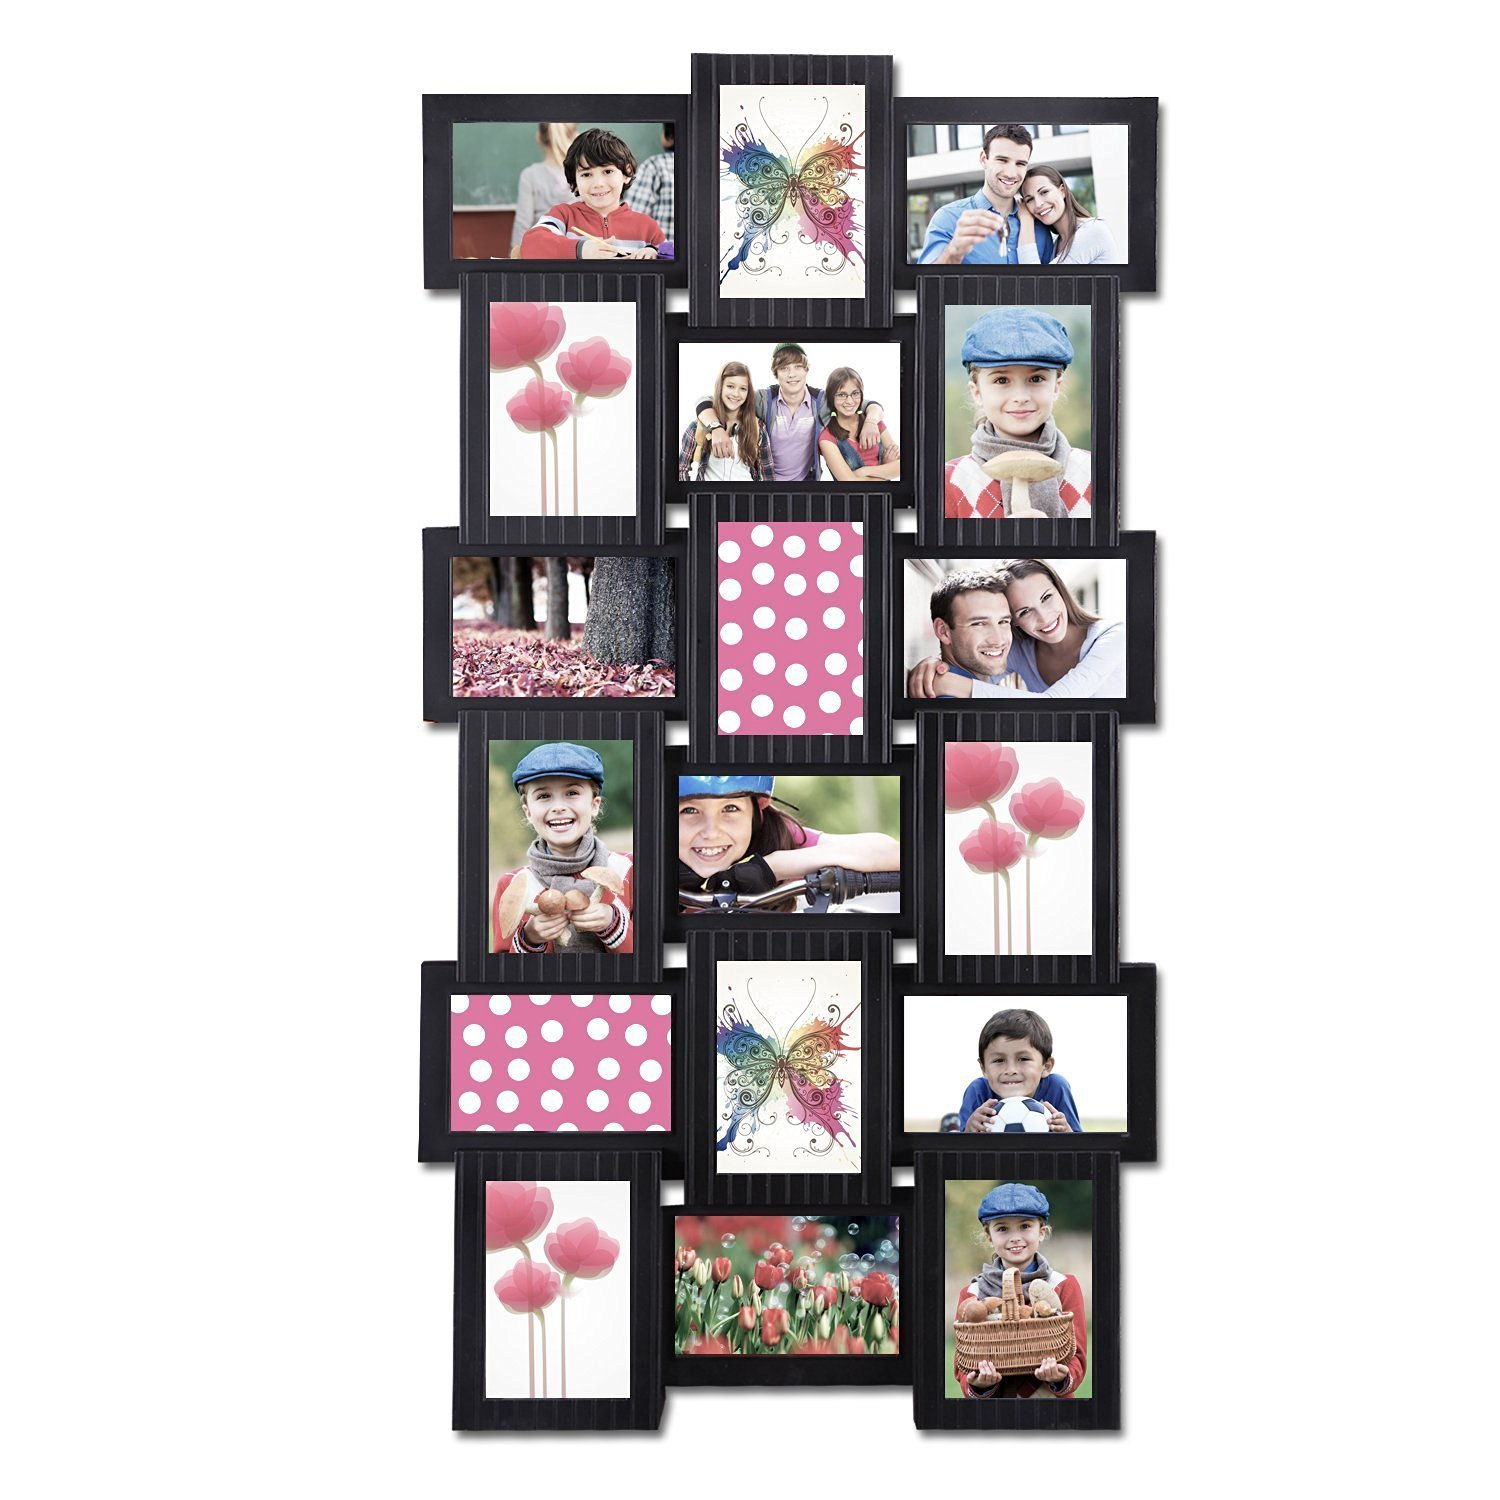 Adeco PF0486 Decorative Black Polyresin Wall Hanging Collage Picture Photo Frame, 4 X 6,Black